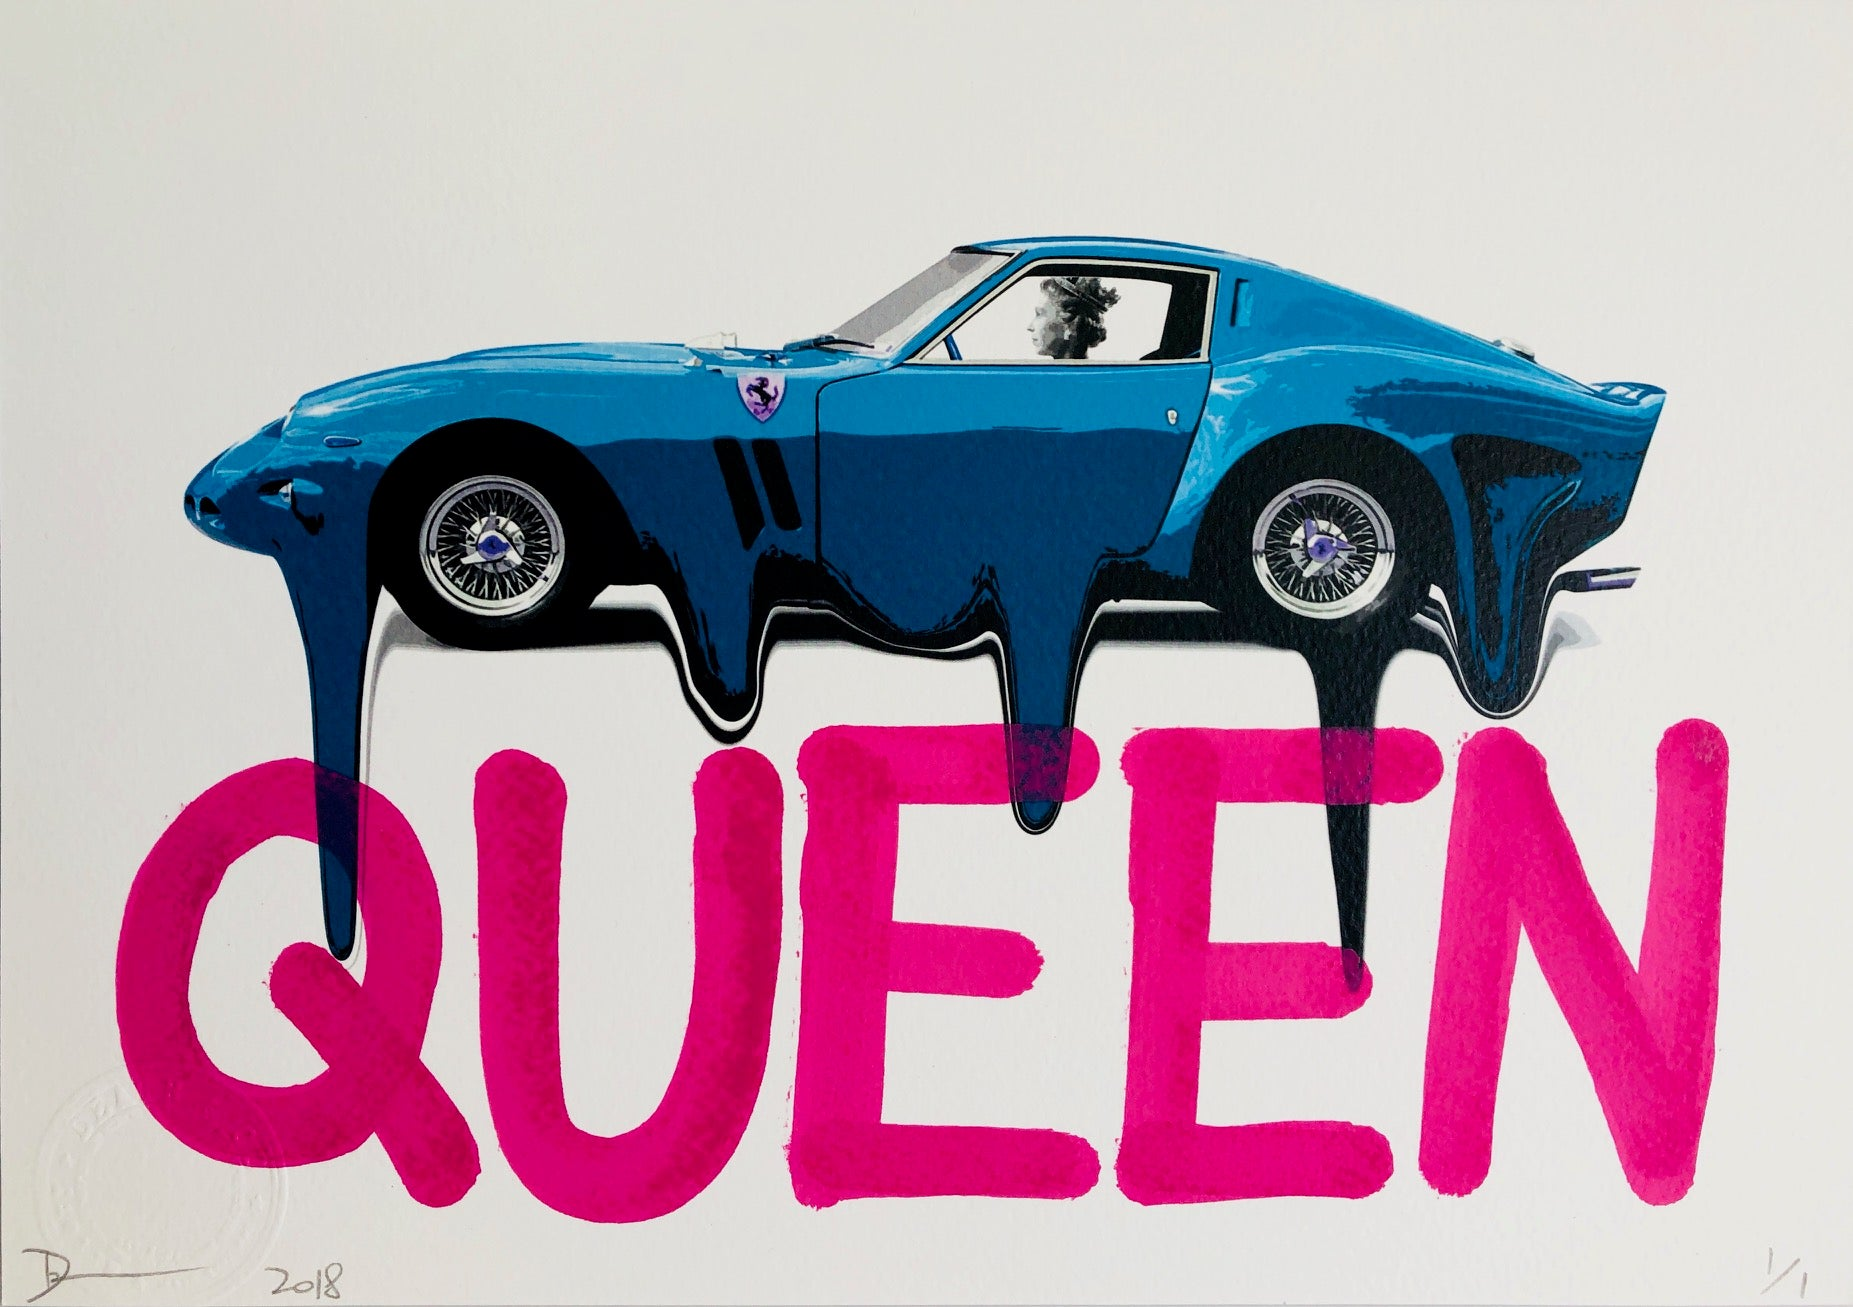 Queen F Car Blue 29x21cm (Edition of 1)